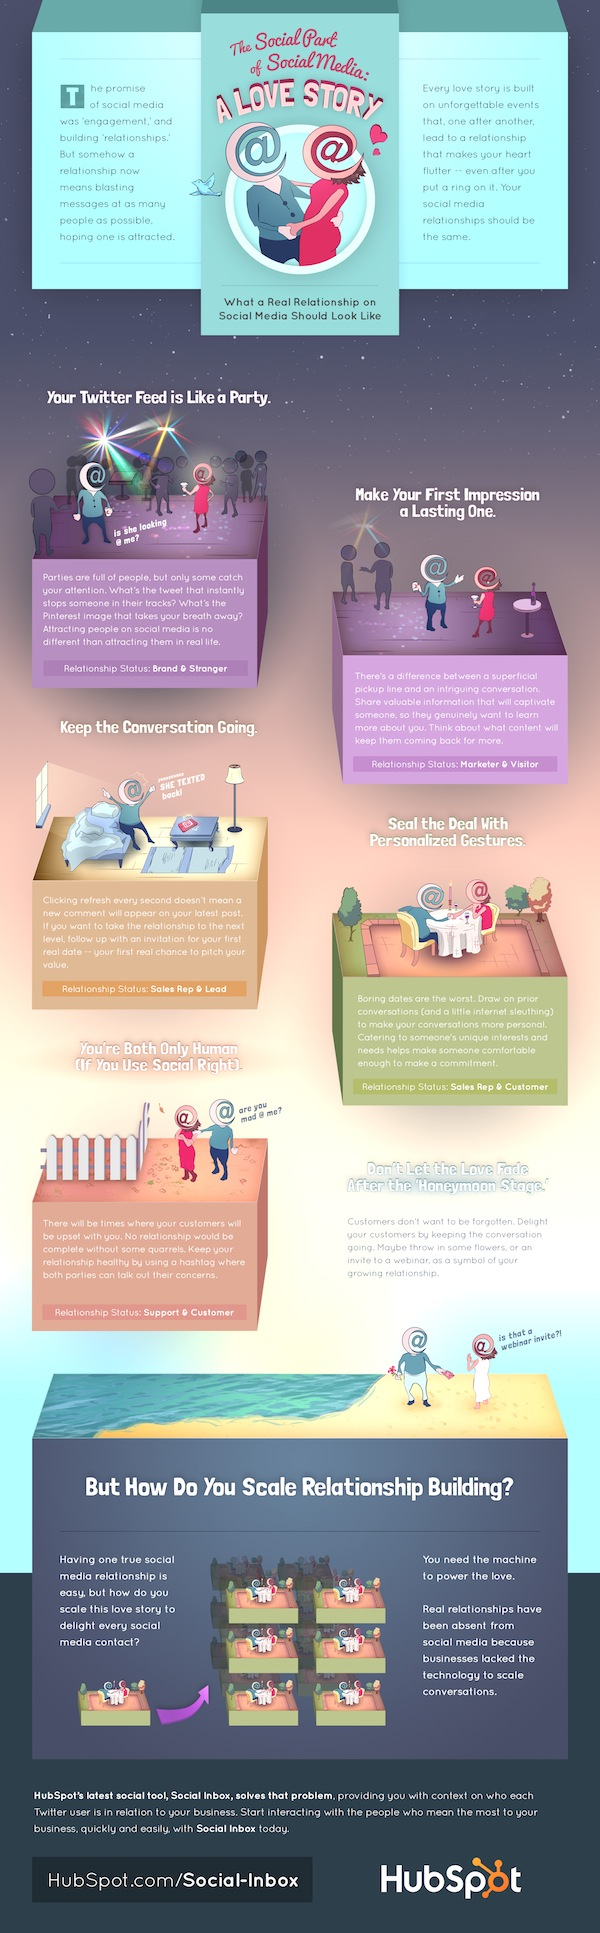 social-part-of-social-media-a-love-story-infographic